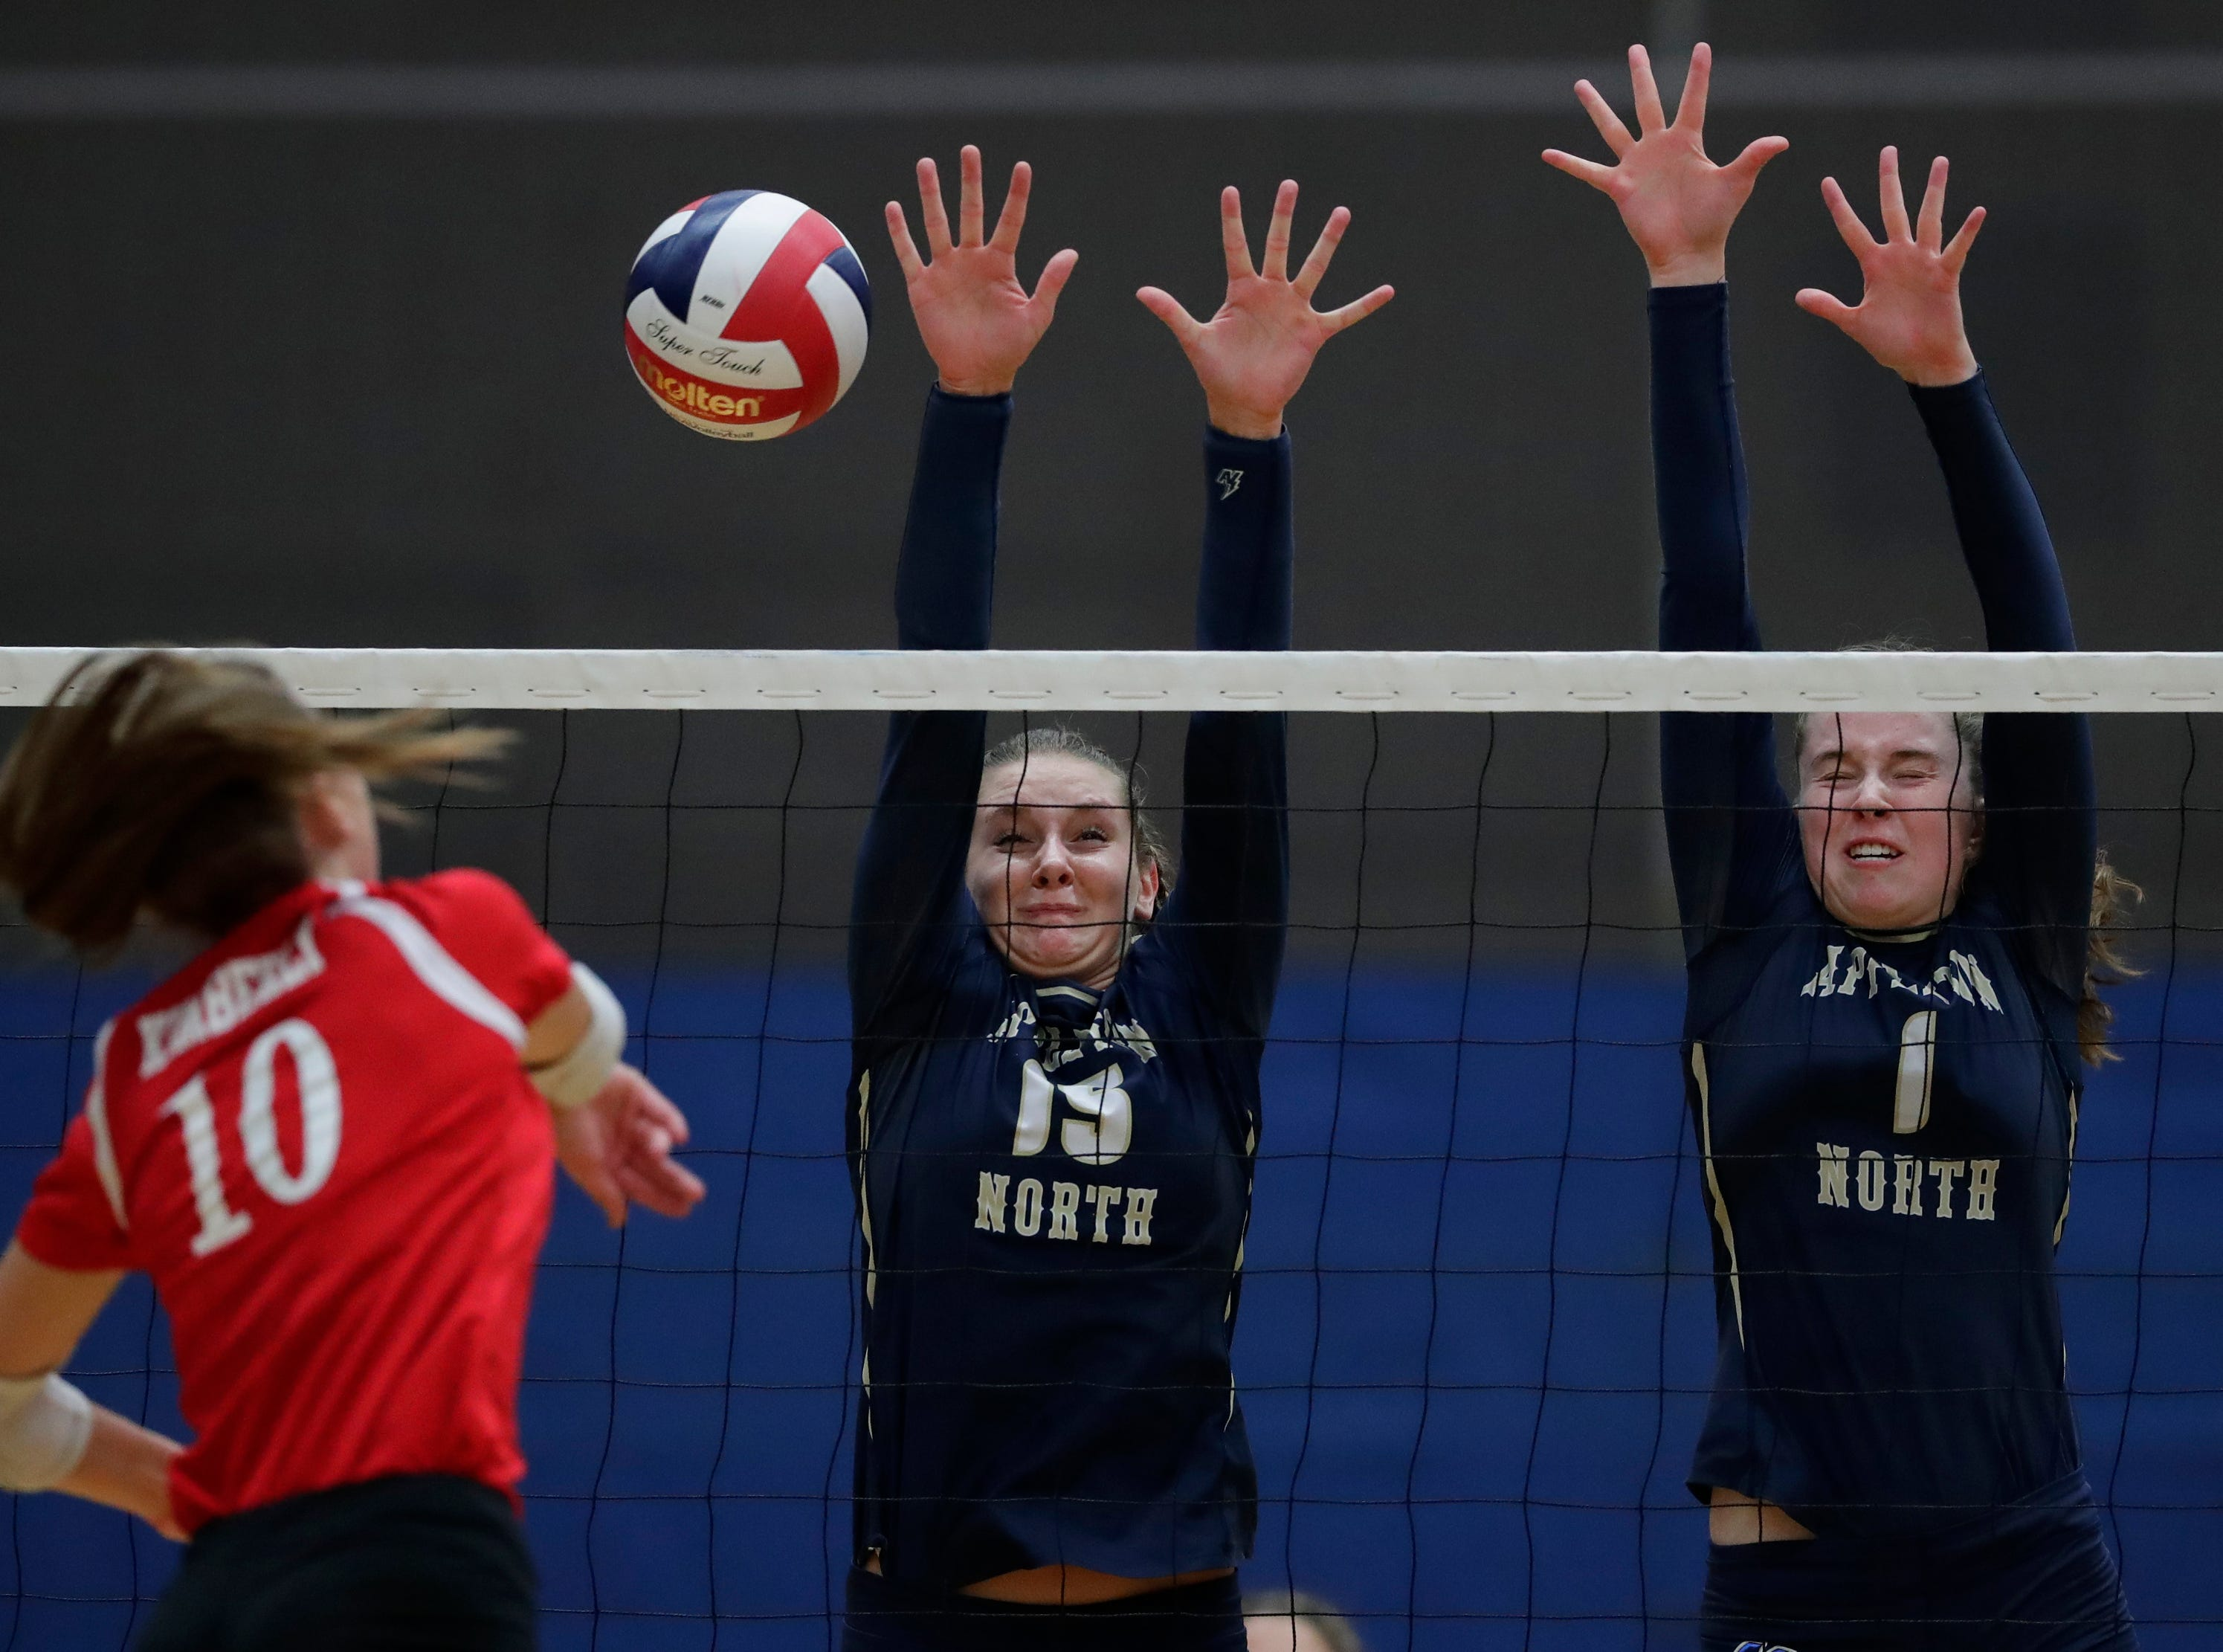 Kimberly High School's Courtney Pearson (10) spikes the ball against Appleton North High School's Taylor Vanden Berg (15) and Sarah Ganser (10) during their girls volleyball match Thursday, Sept. 27, 2018, in Appleton, Wis. Dan Powers/USA TODAY NETWORK-Wisconsin